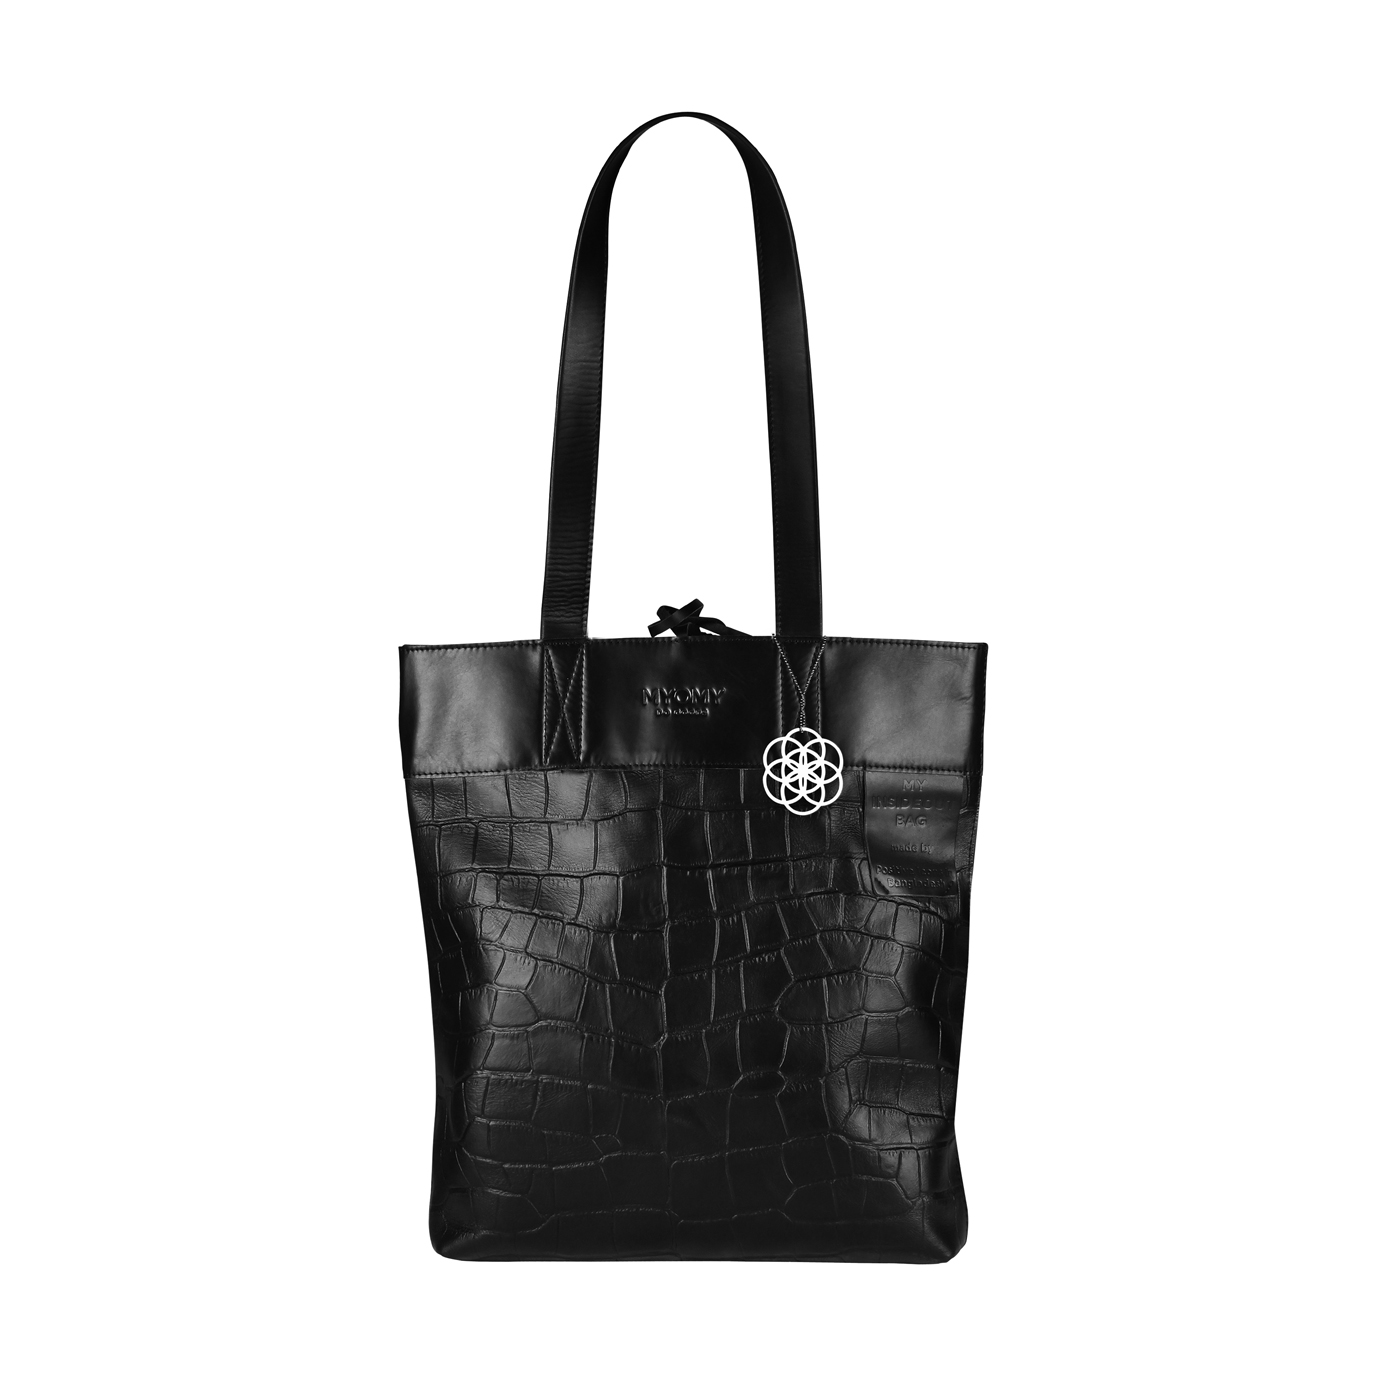 MY INSIDEOUT BAG Long handle - Mix hunter waxy & croco black